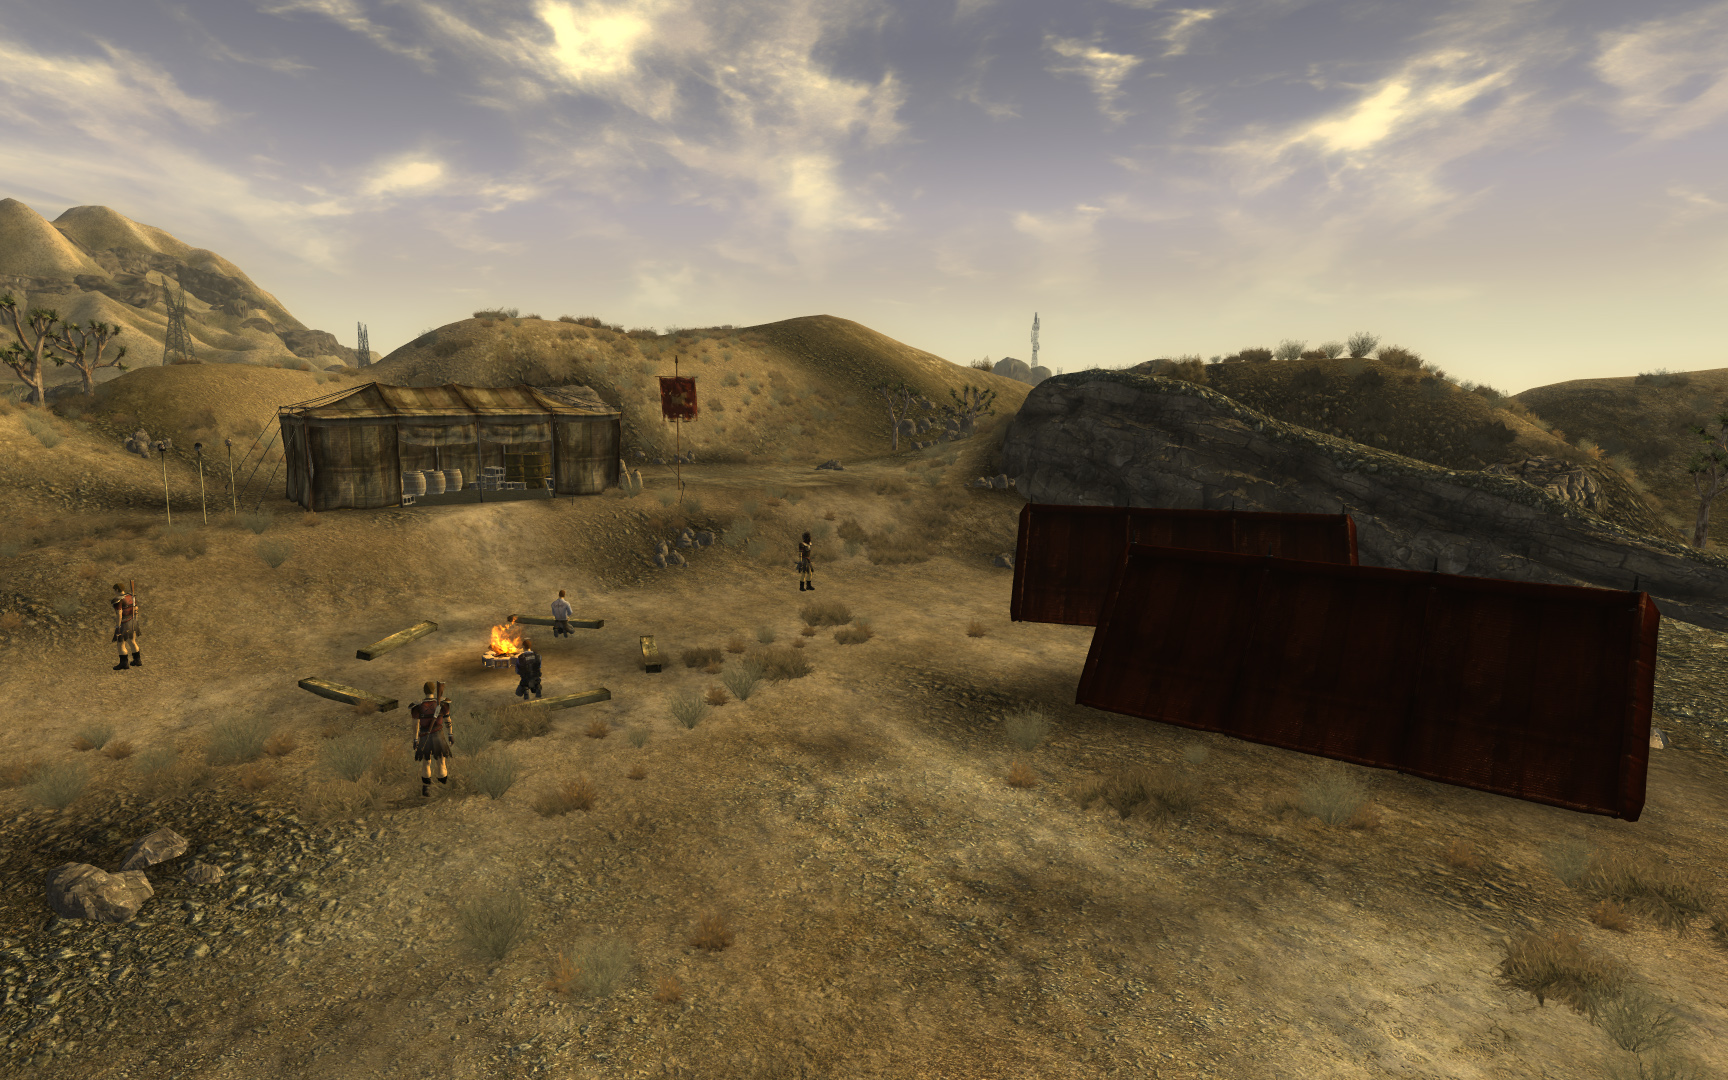 Legion raid camp The Fallout wiki Fallout New Vegas and more